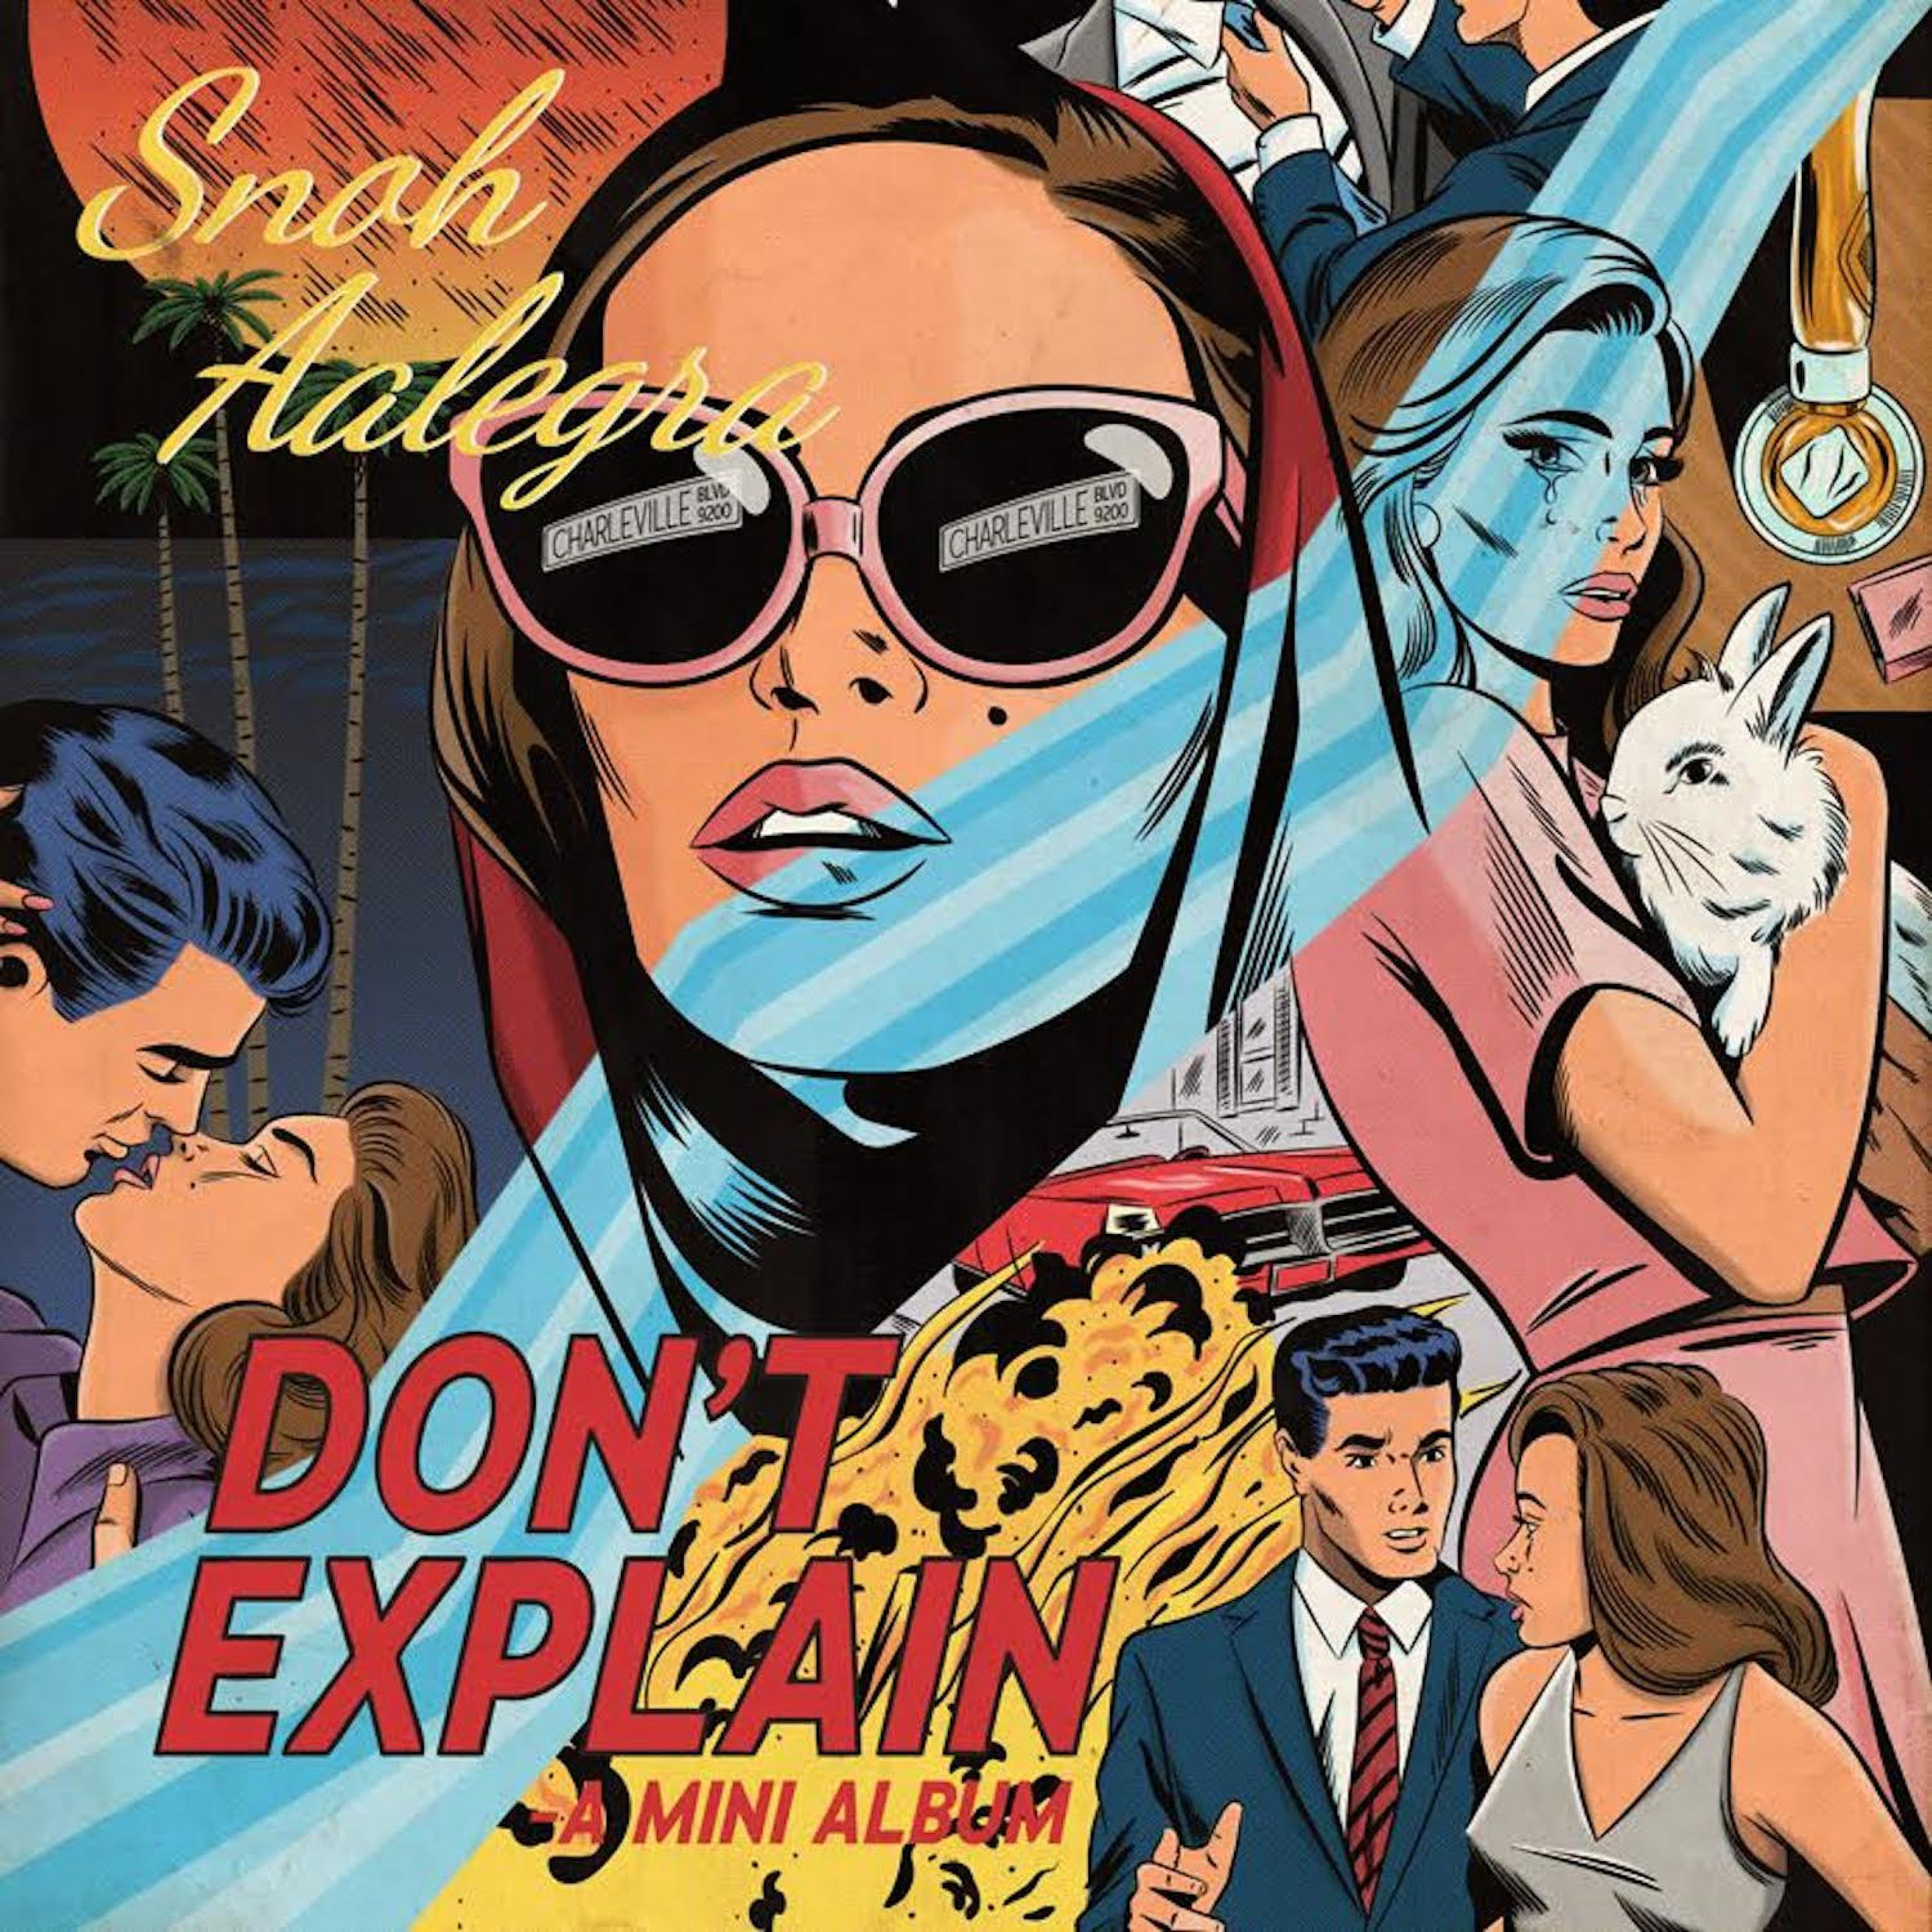 Snoh-Aalegra-Dont-Explain-2016-2480x2480-1